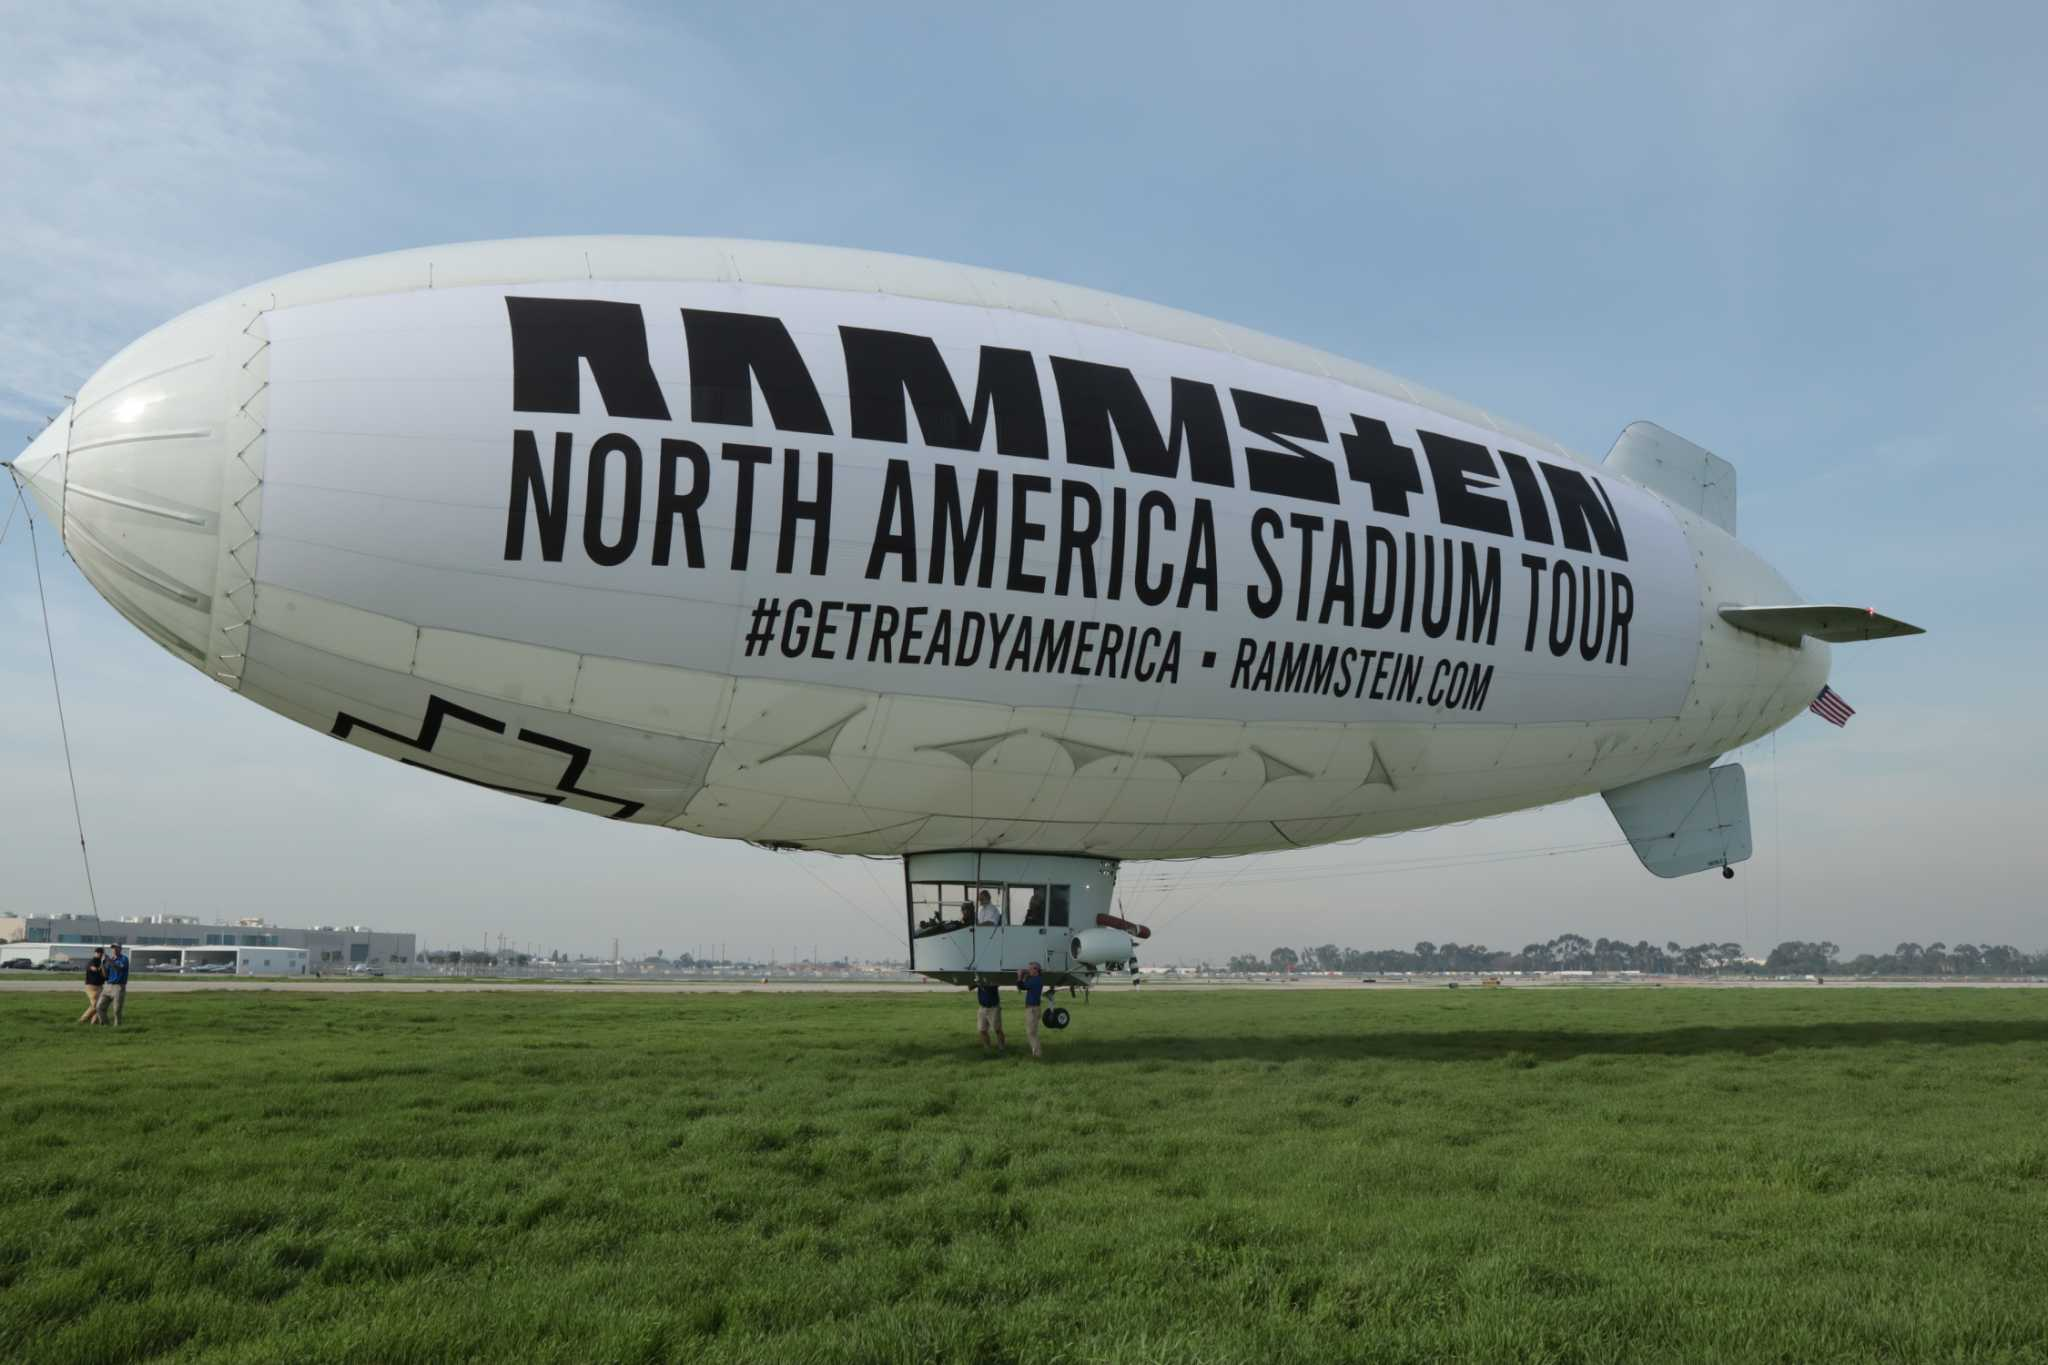 Rammstein Promotes North American Stadium Tour With A